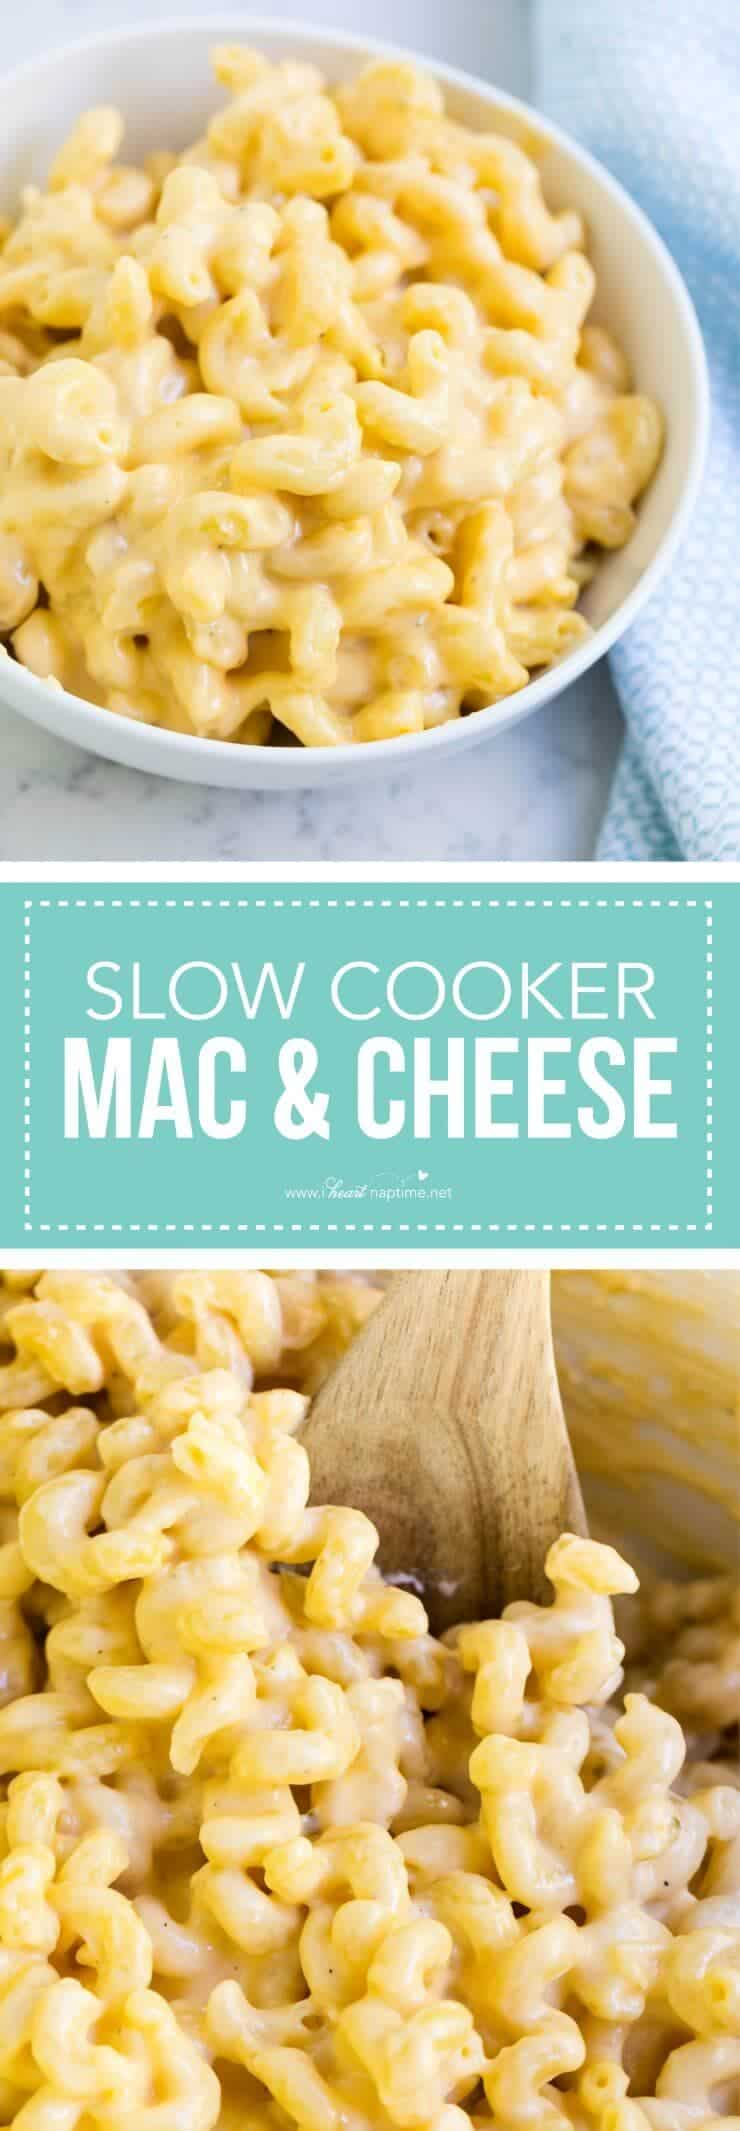 Creamy slow cooker mac and cheese -only takes 10 minutes to prep and made with only a few simple ingredients! Pure comfort in a bowl.